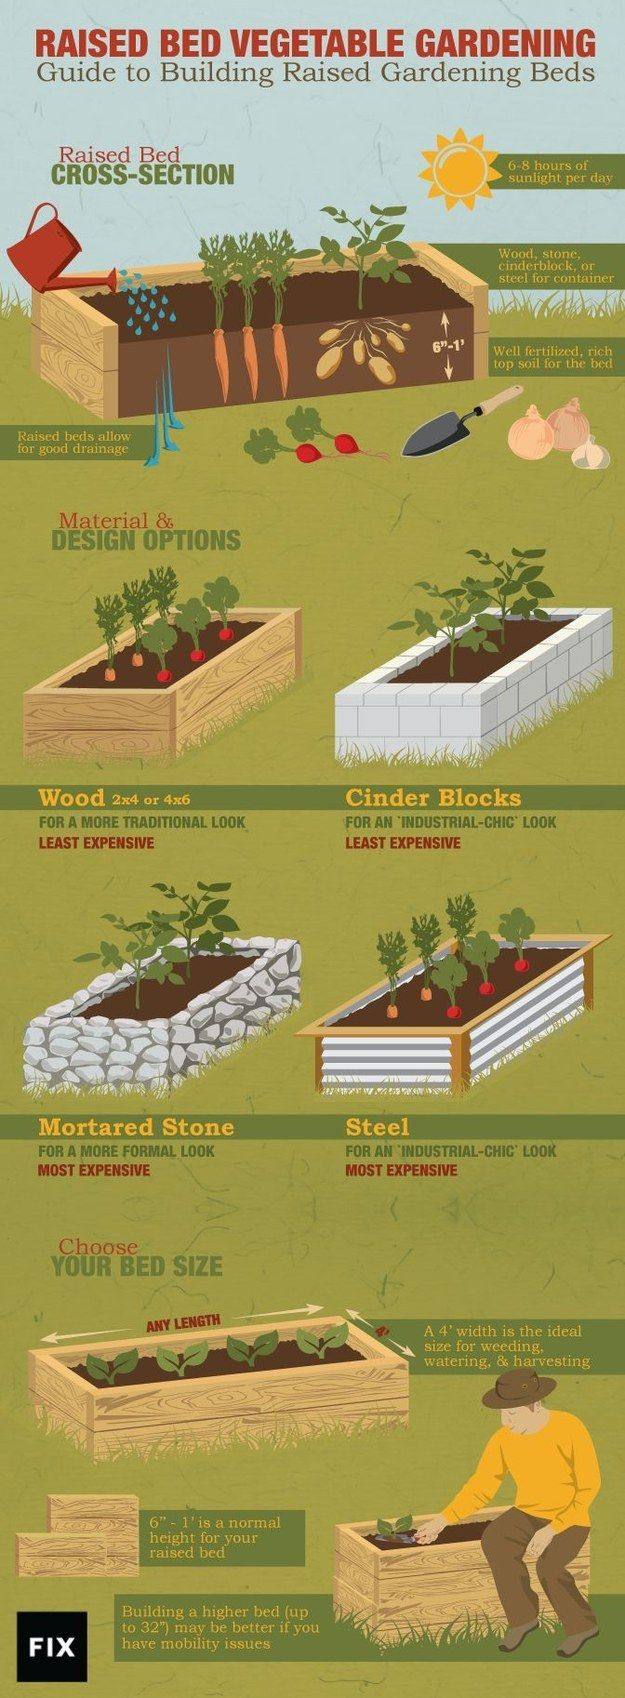 Raised gardening beds keep vegetables away from contaminated soil, can deter some pests, and are easier on backs and knees—here's some information about how to make one. | 23 Diagrams That Make Gardening So Much Easier